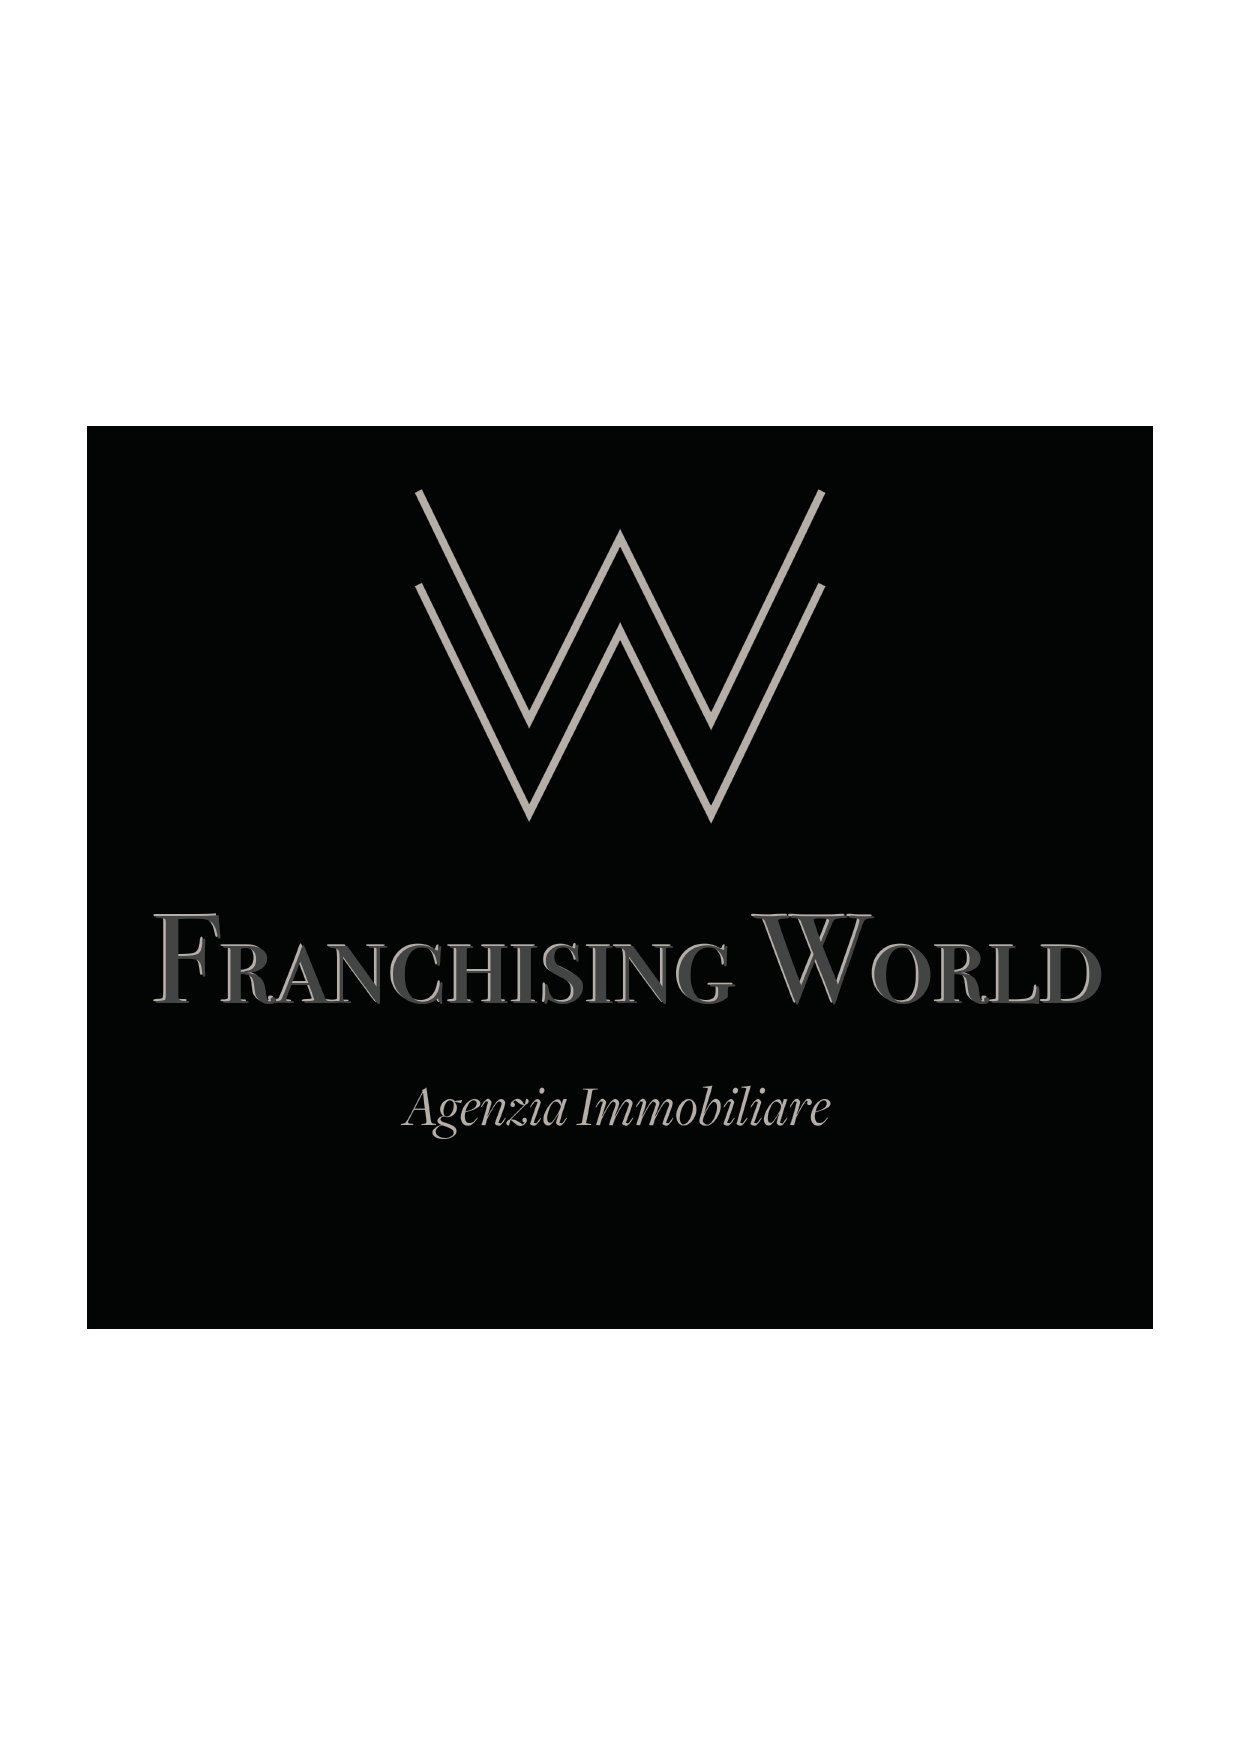 AGENZIA IMMOBILIARE FRANCHISING WORLD